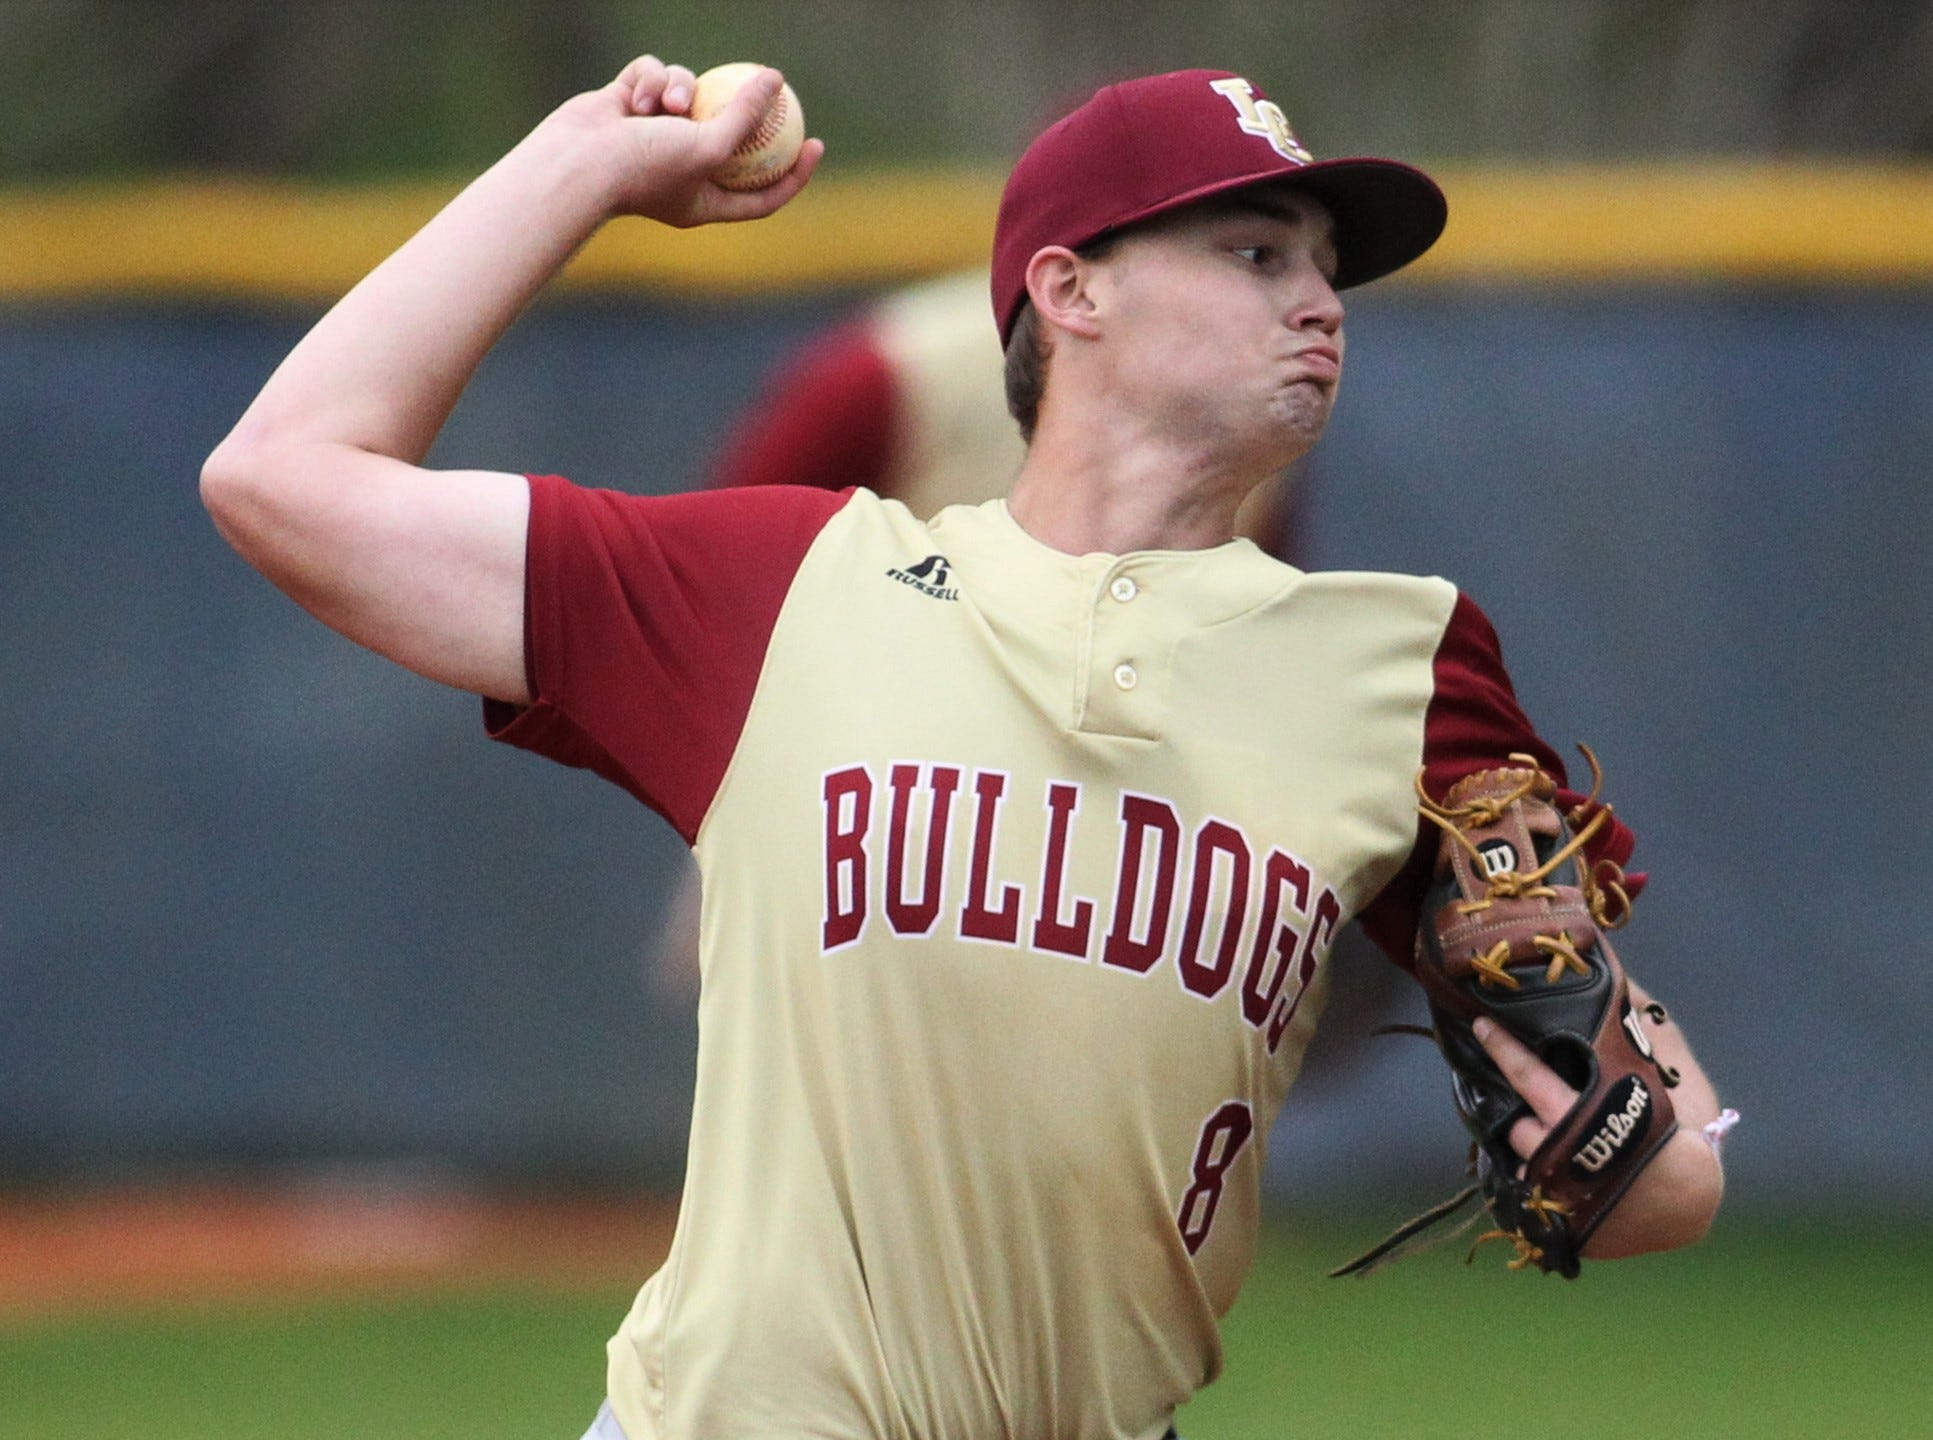 Liberty County's Hunter Sanford pitches in relief as Liberty County's baseball team went on the road to beat Maclay 8-2 on Saturday, March 16, 2019. The Bulldogs played their first game following their head coach Corey Crum's tragic death six days ago.